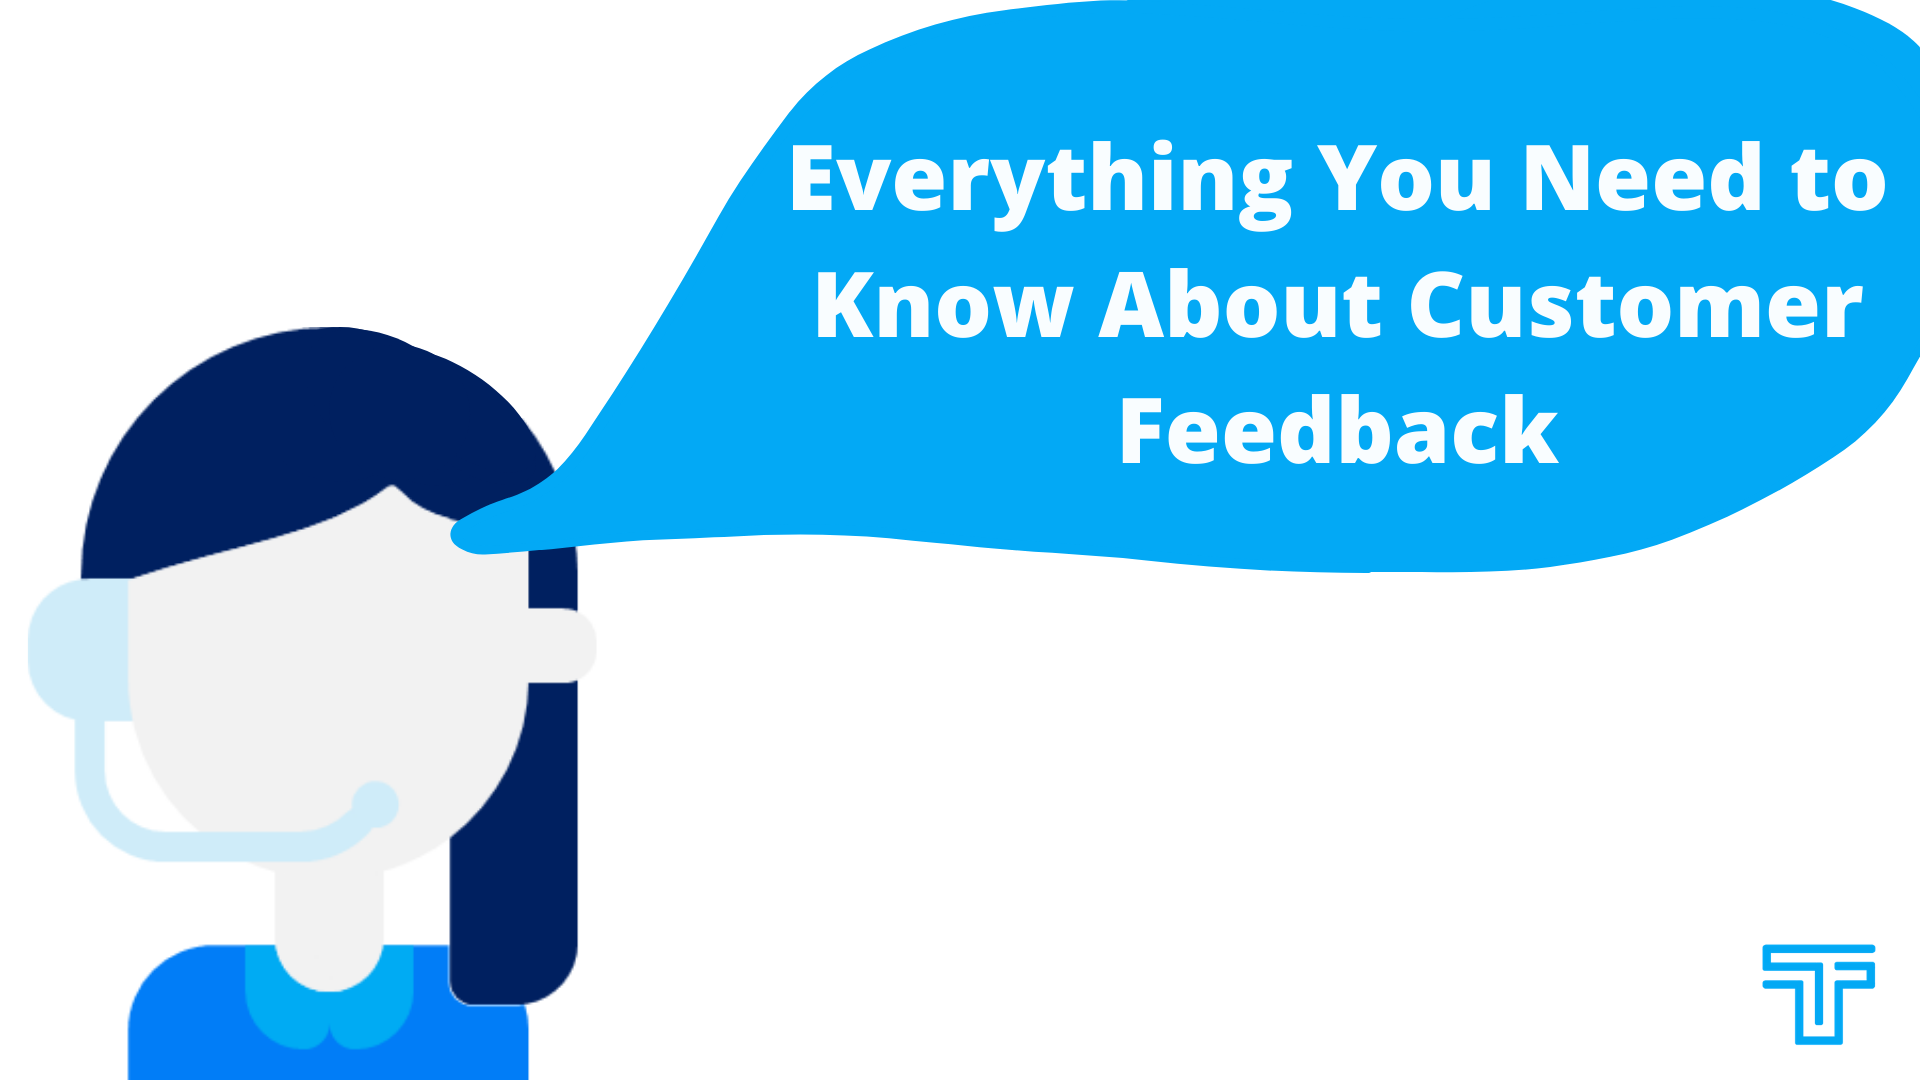 Everything you need to know about customer feedback